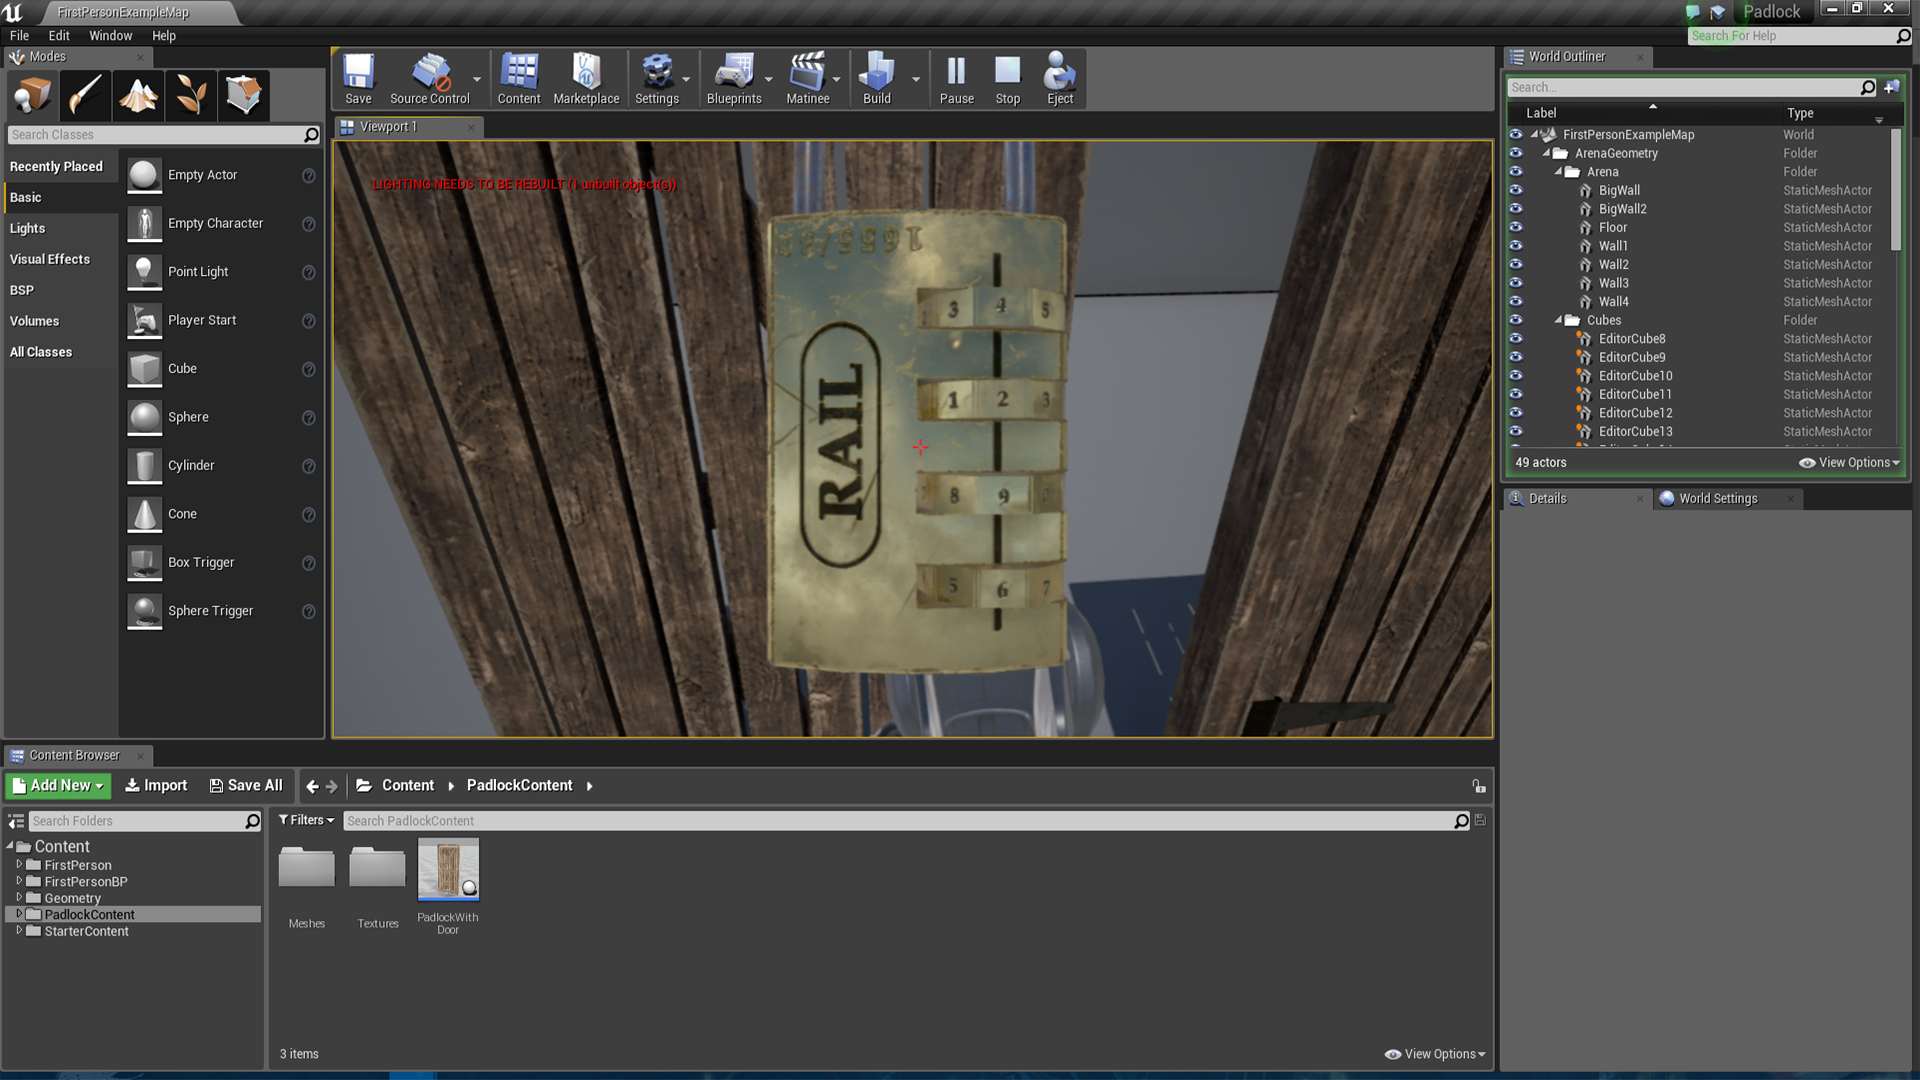 Pad lock and keypad blueprint by blueprint games in blueprints share malvernweather Choice Image